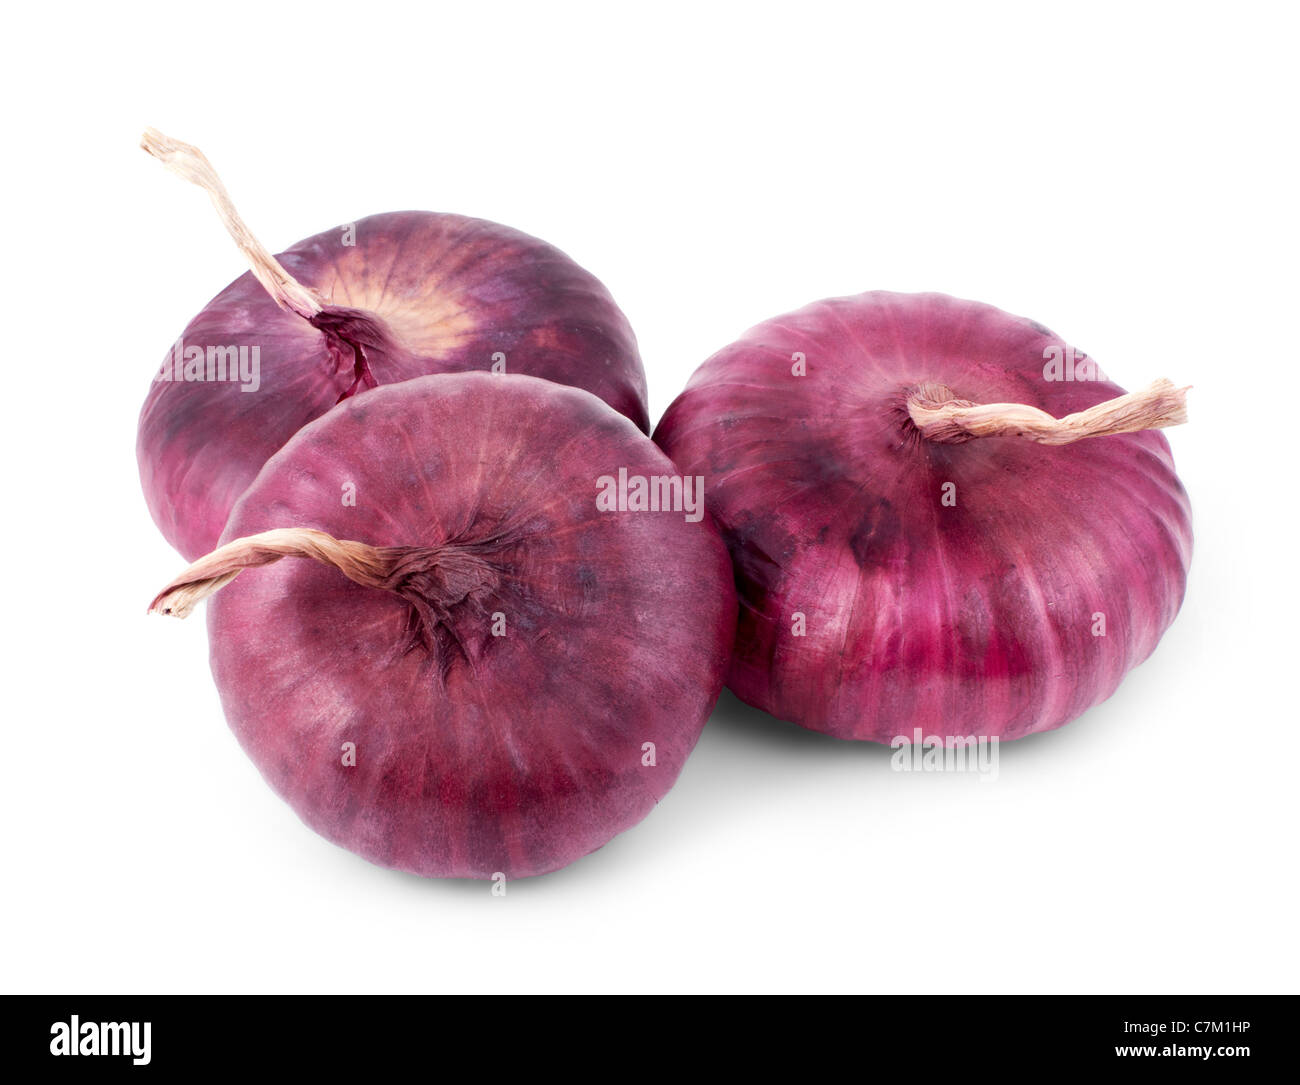 purple onion isolated on a white background - Stock Image